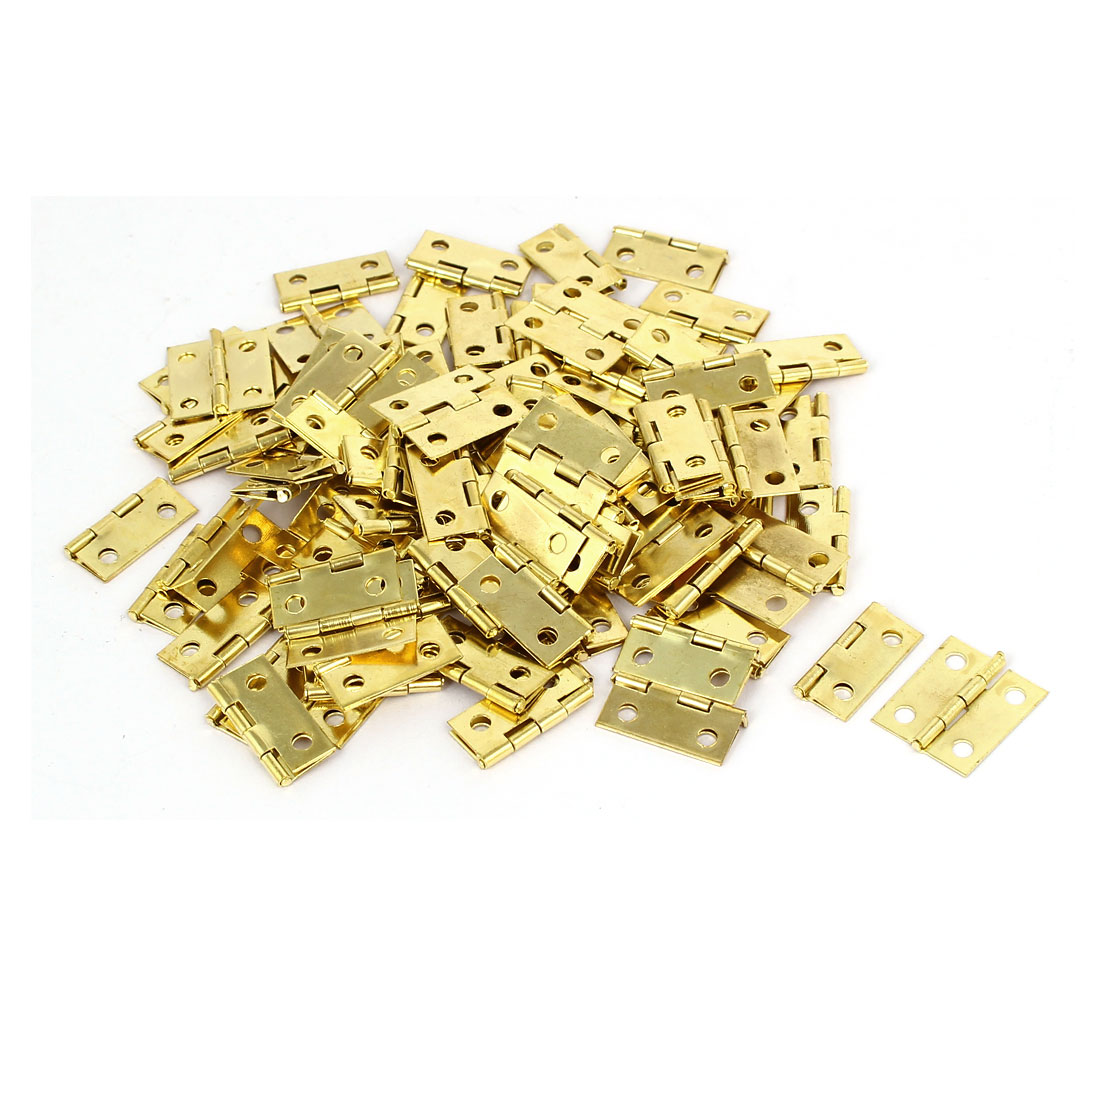 Jewelry Gift Box Wood Case Butt Hinges Gold Tone 18mm Length 100PCS